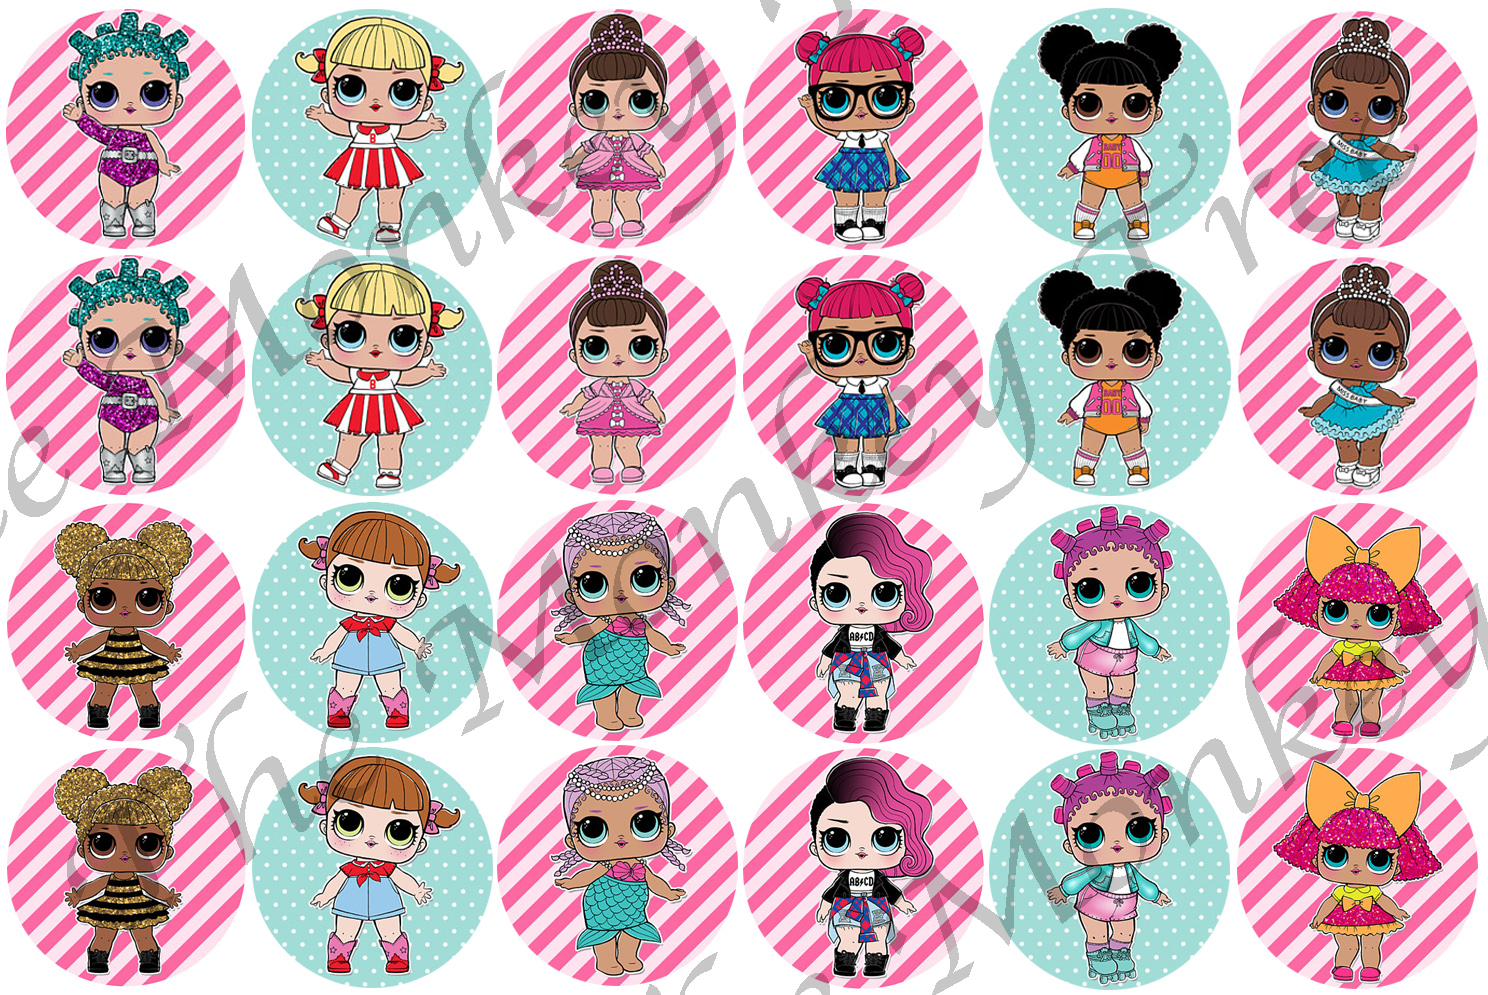 LOL Surprise! Dolls Edible Cupcake Toppers x 24 | The ...